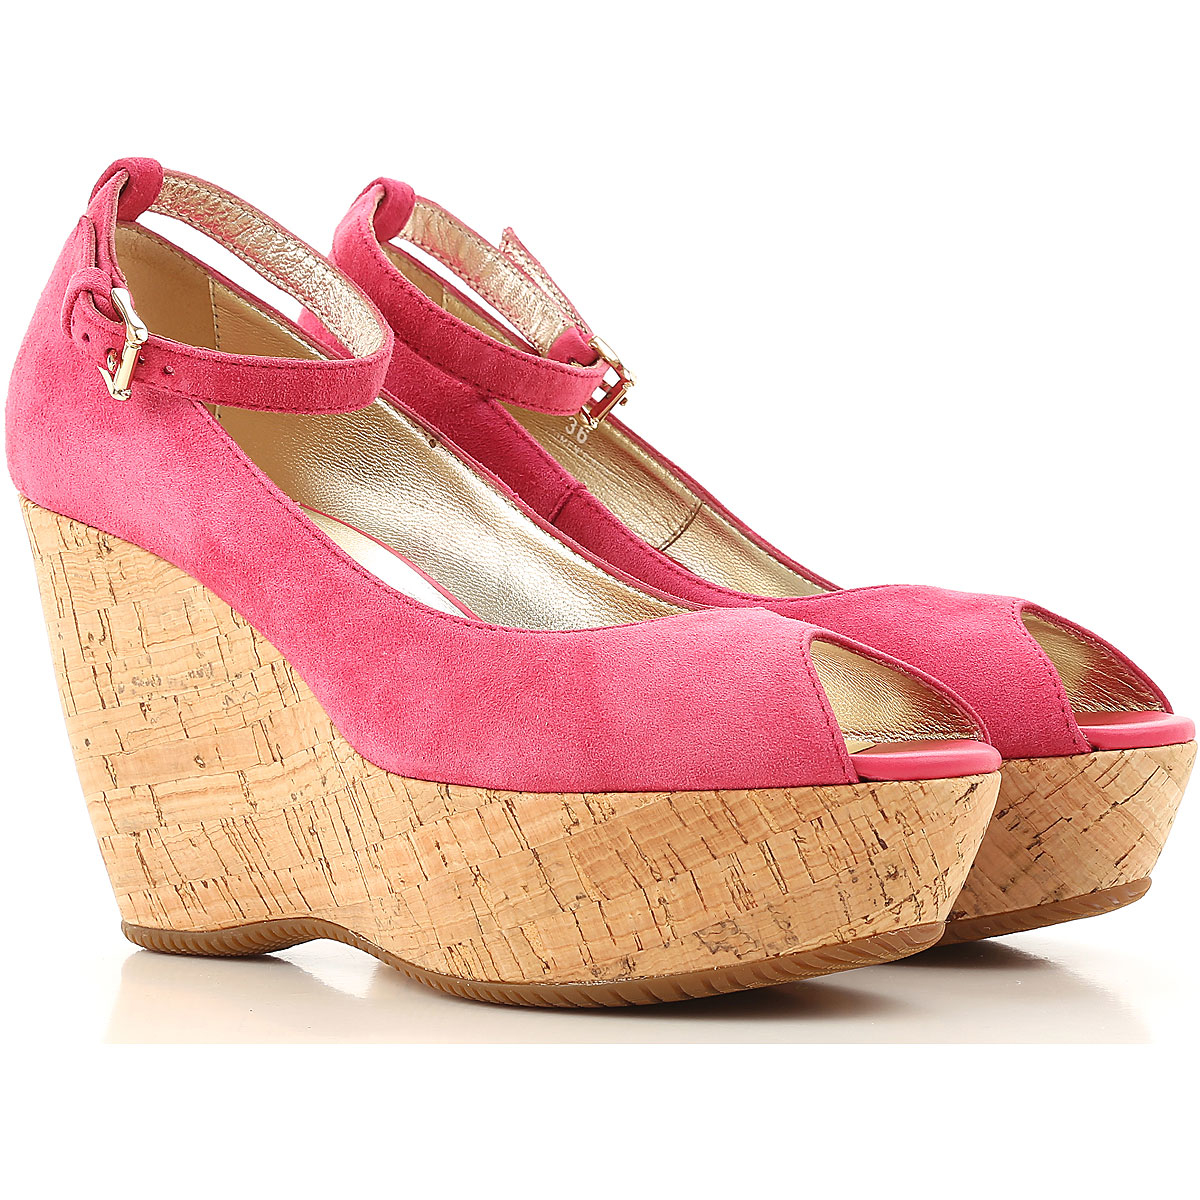 Hogan Wedges for Women in Outlet Fuchsia Canada - GOOFASH - Womens HOUSE SHOES